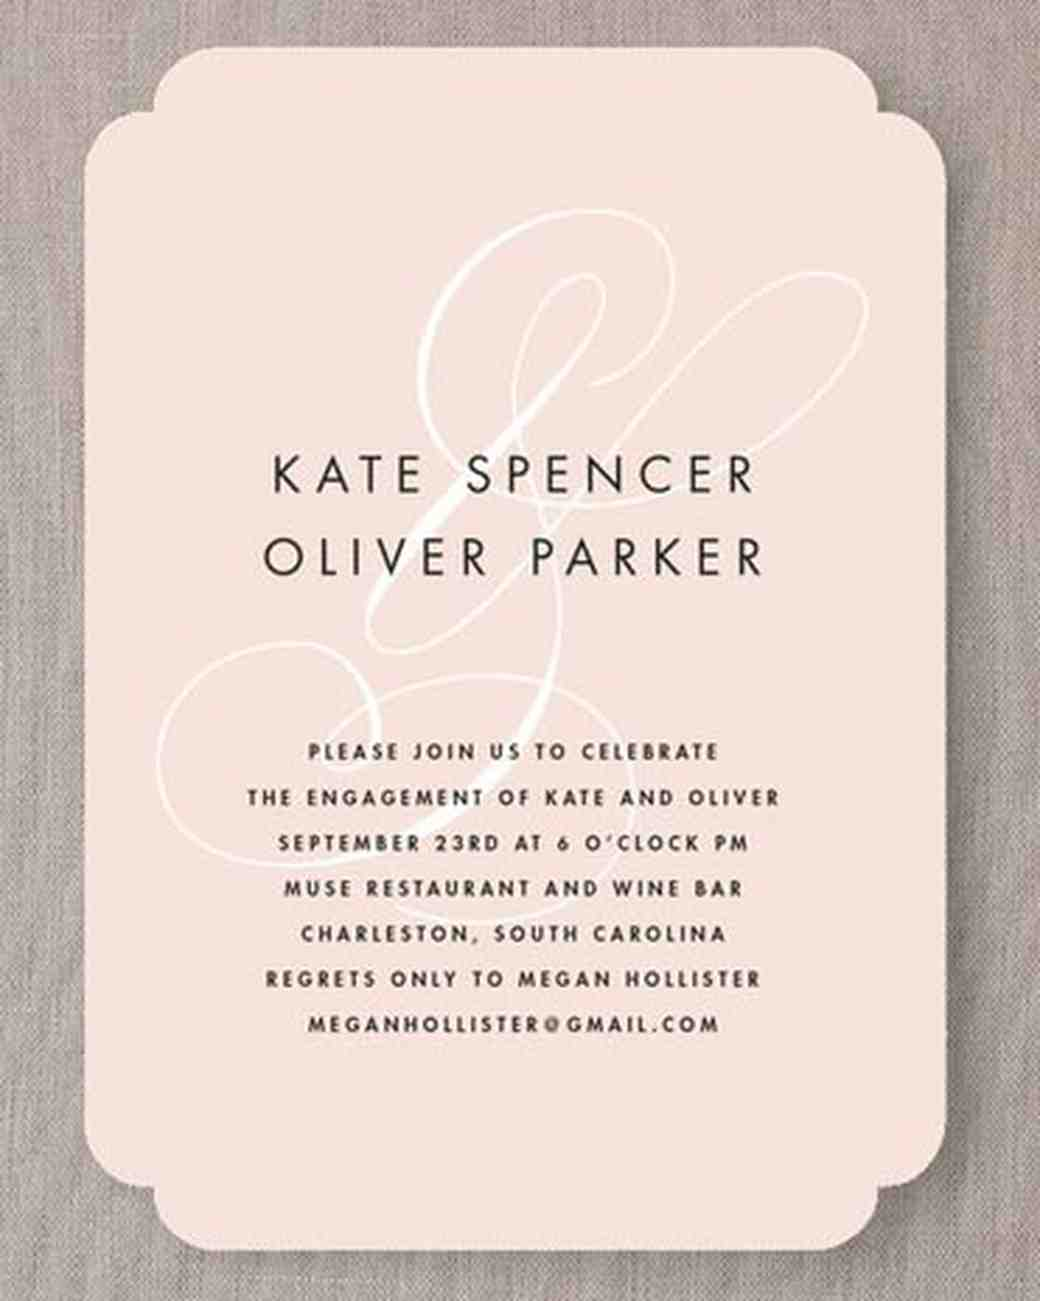 Martha Stewart Weddings  How To Word Engagement Party Invitations